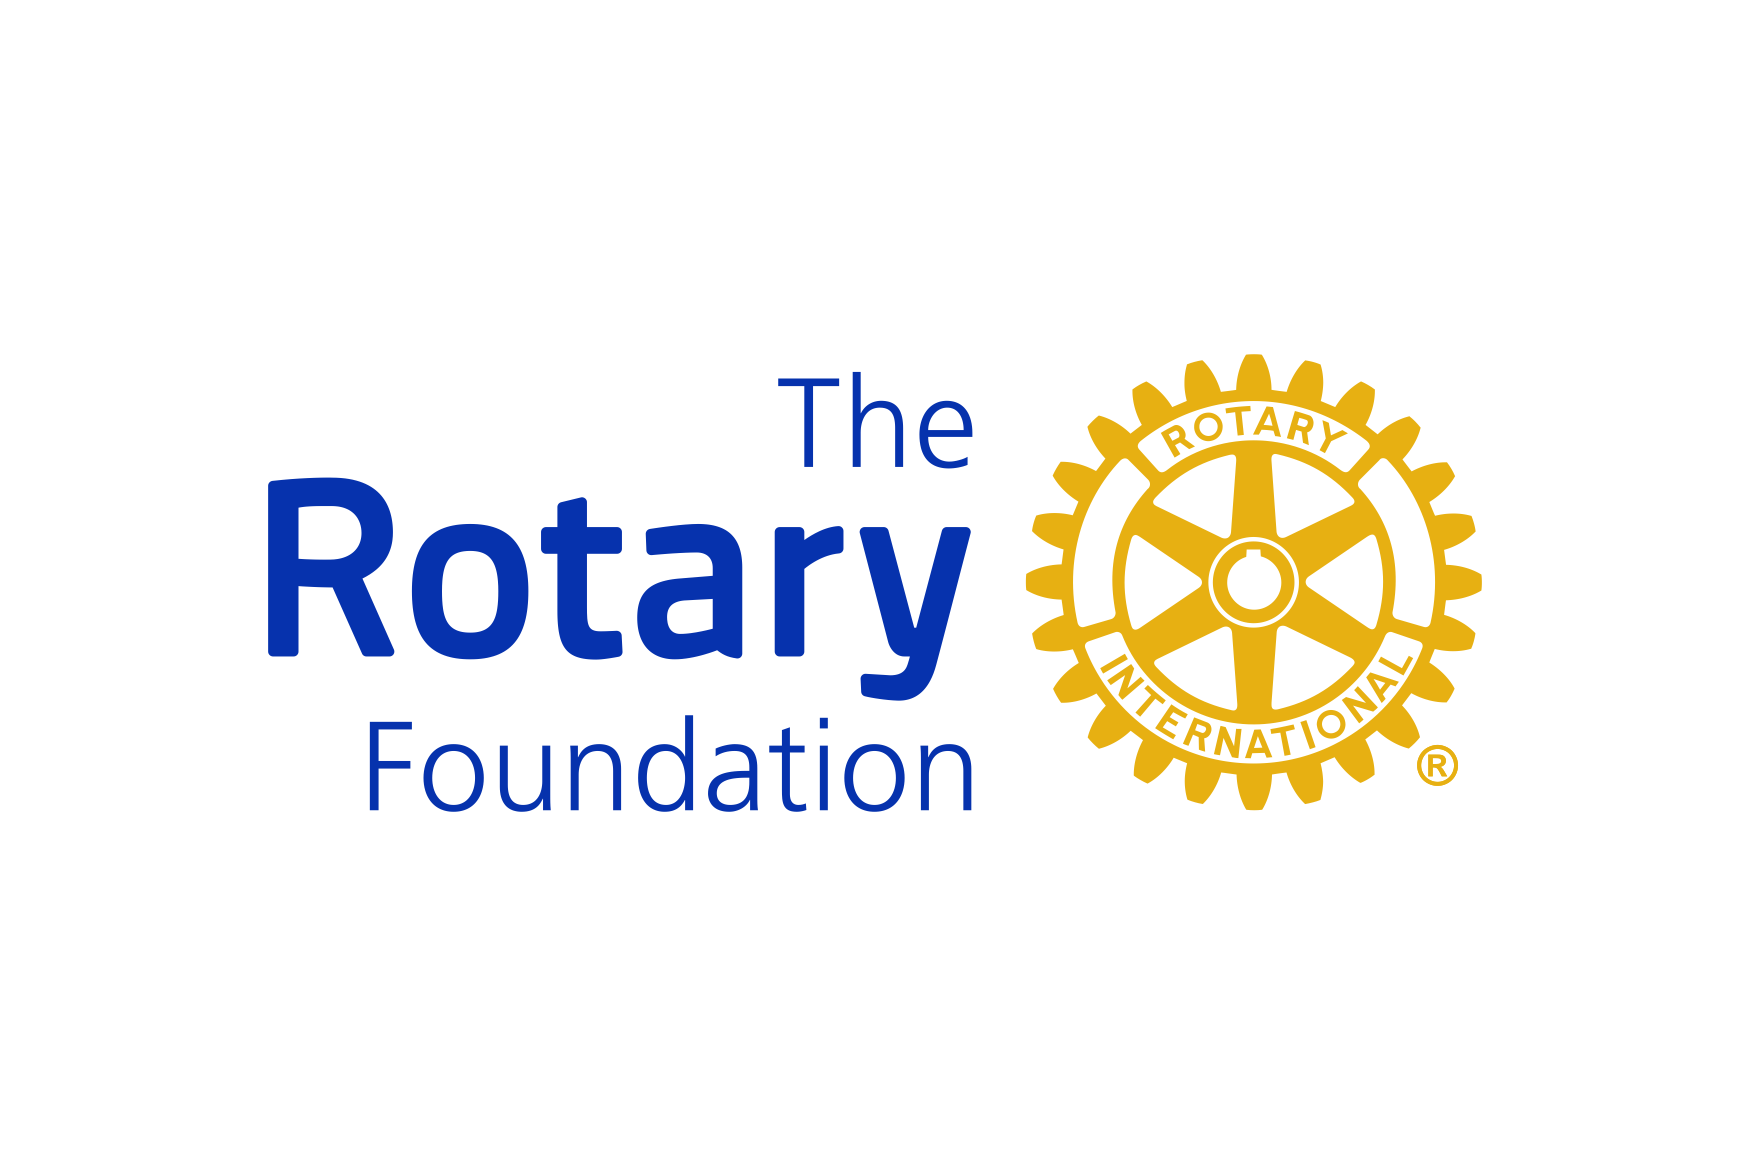 The Rotary Foundation - The Rotary Foundation transforms your gifts into service projects that change lives both close to home and around the world.